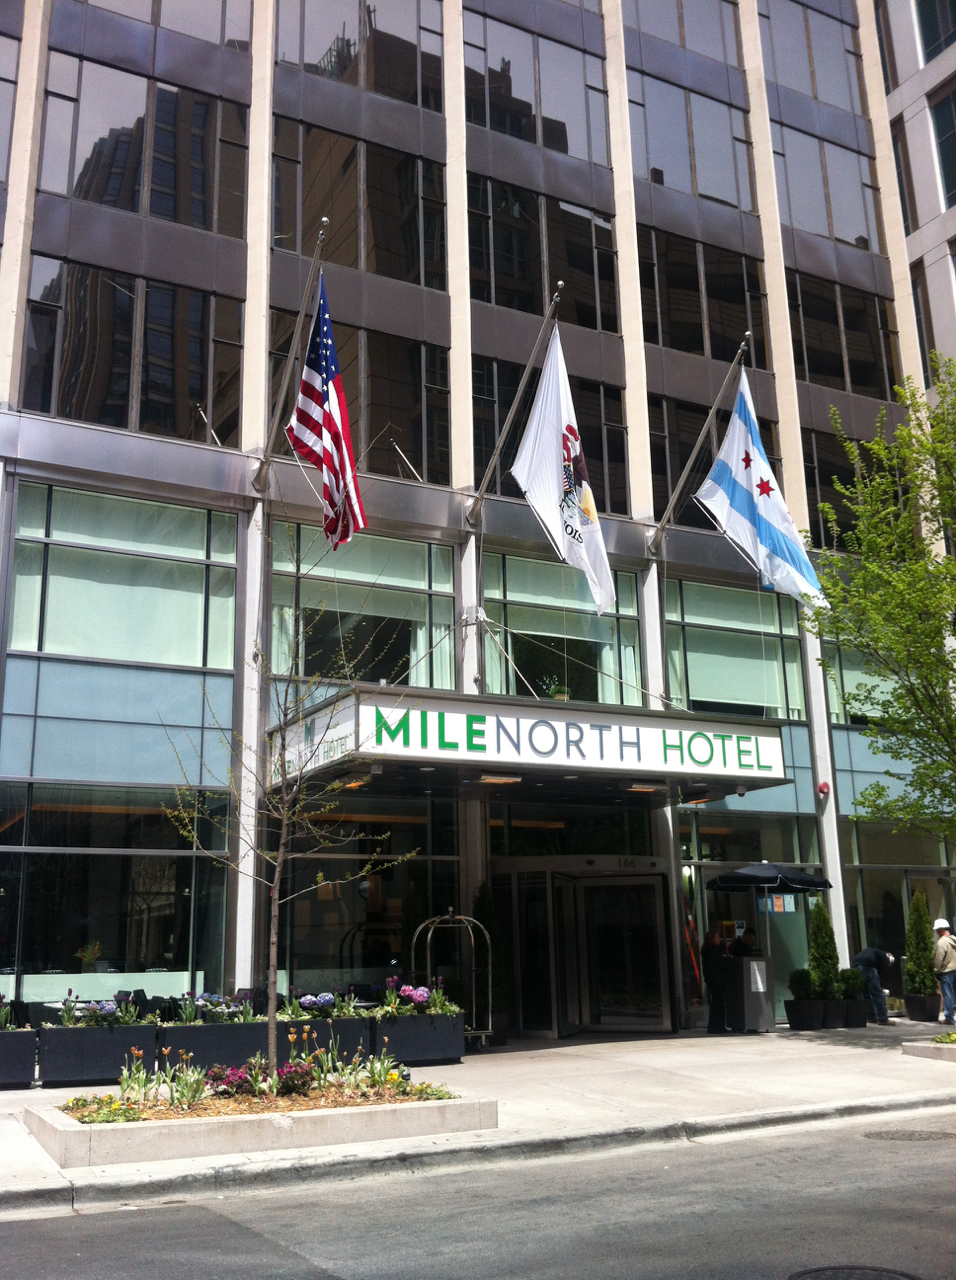 Mile North Hotel (Exterior), Chicago, IL